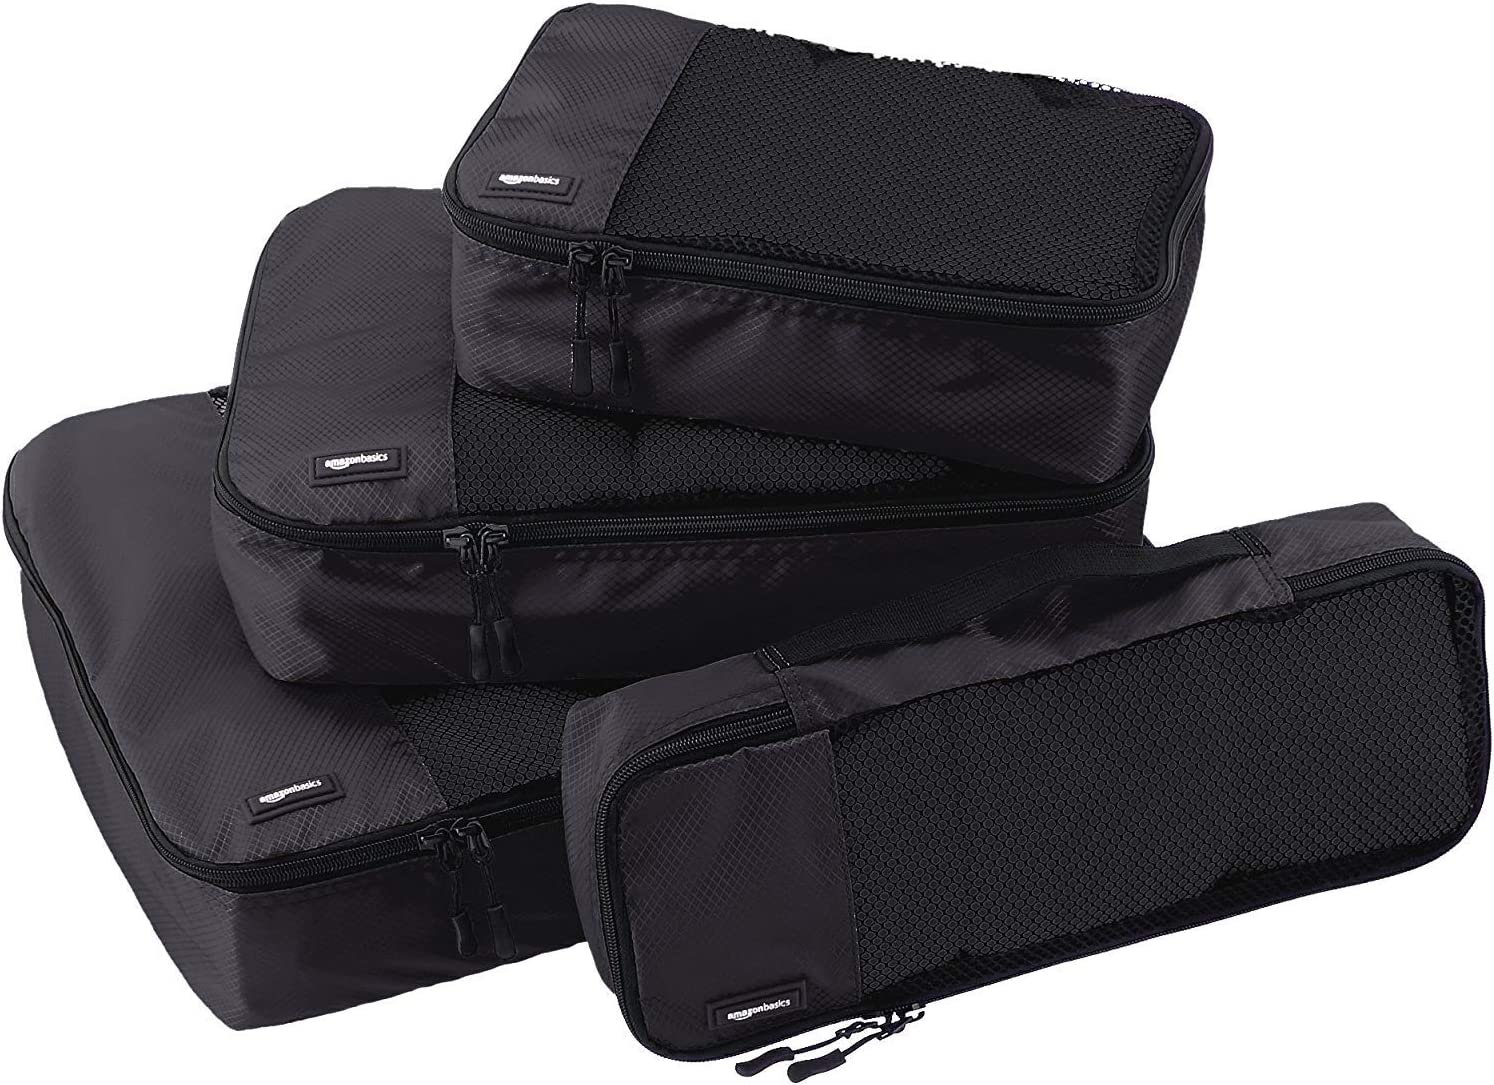 AmazonBasics 4 Piece Packing Travel Organizer Cubes Set